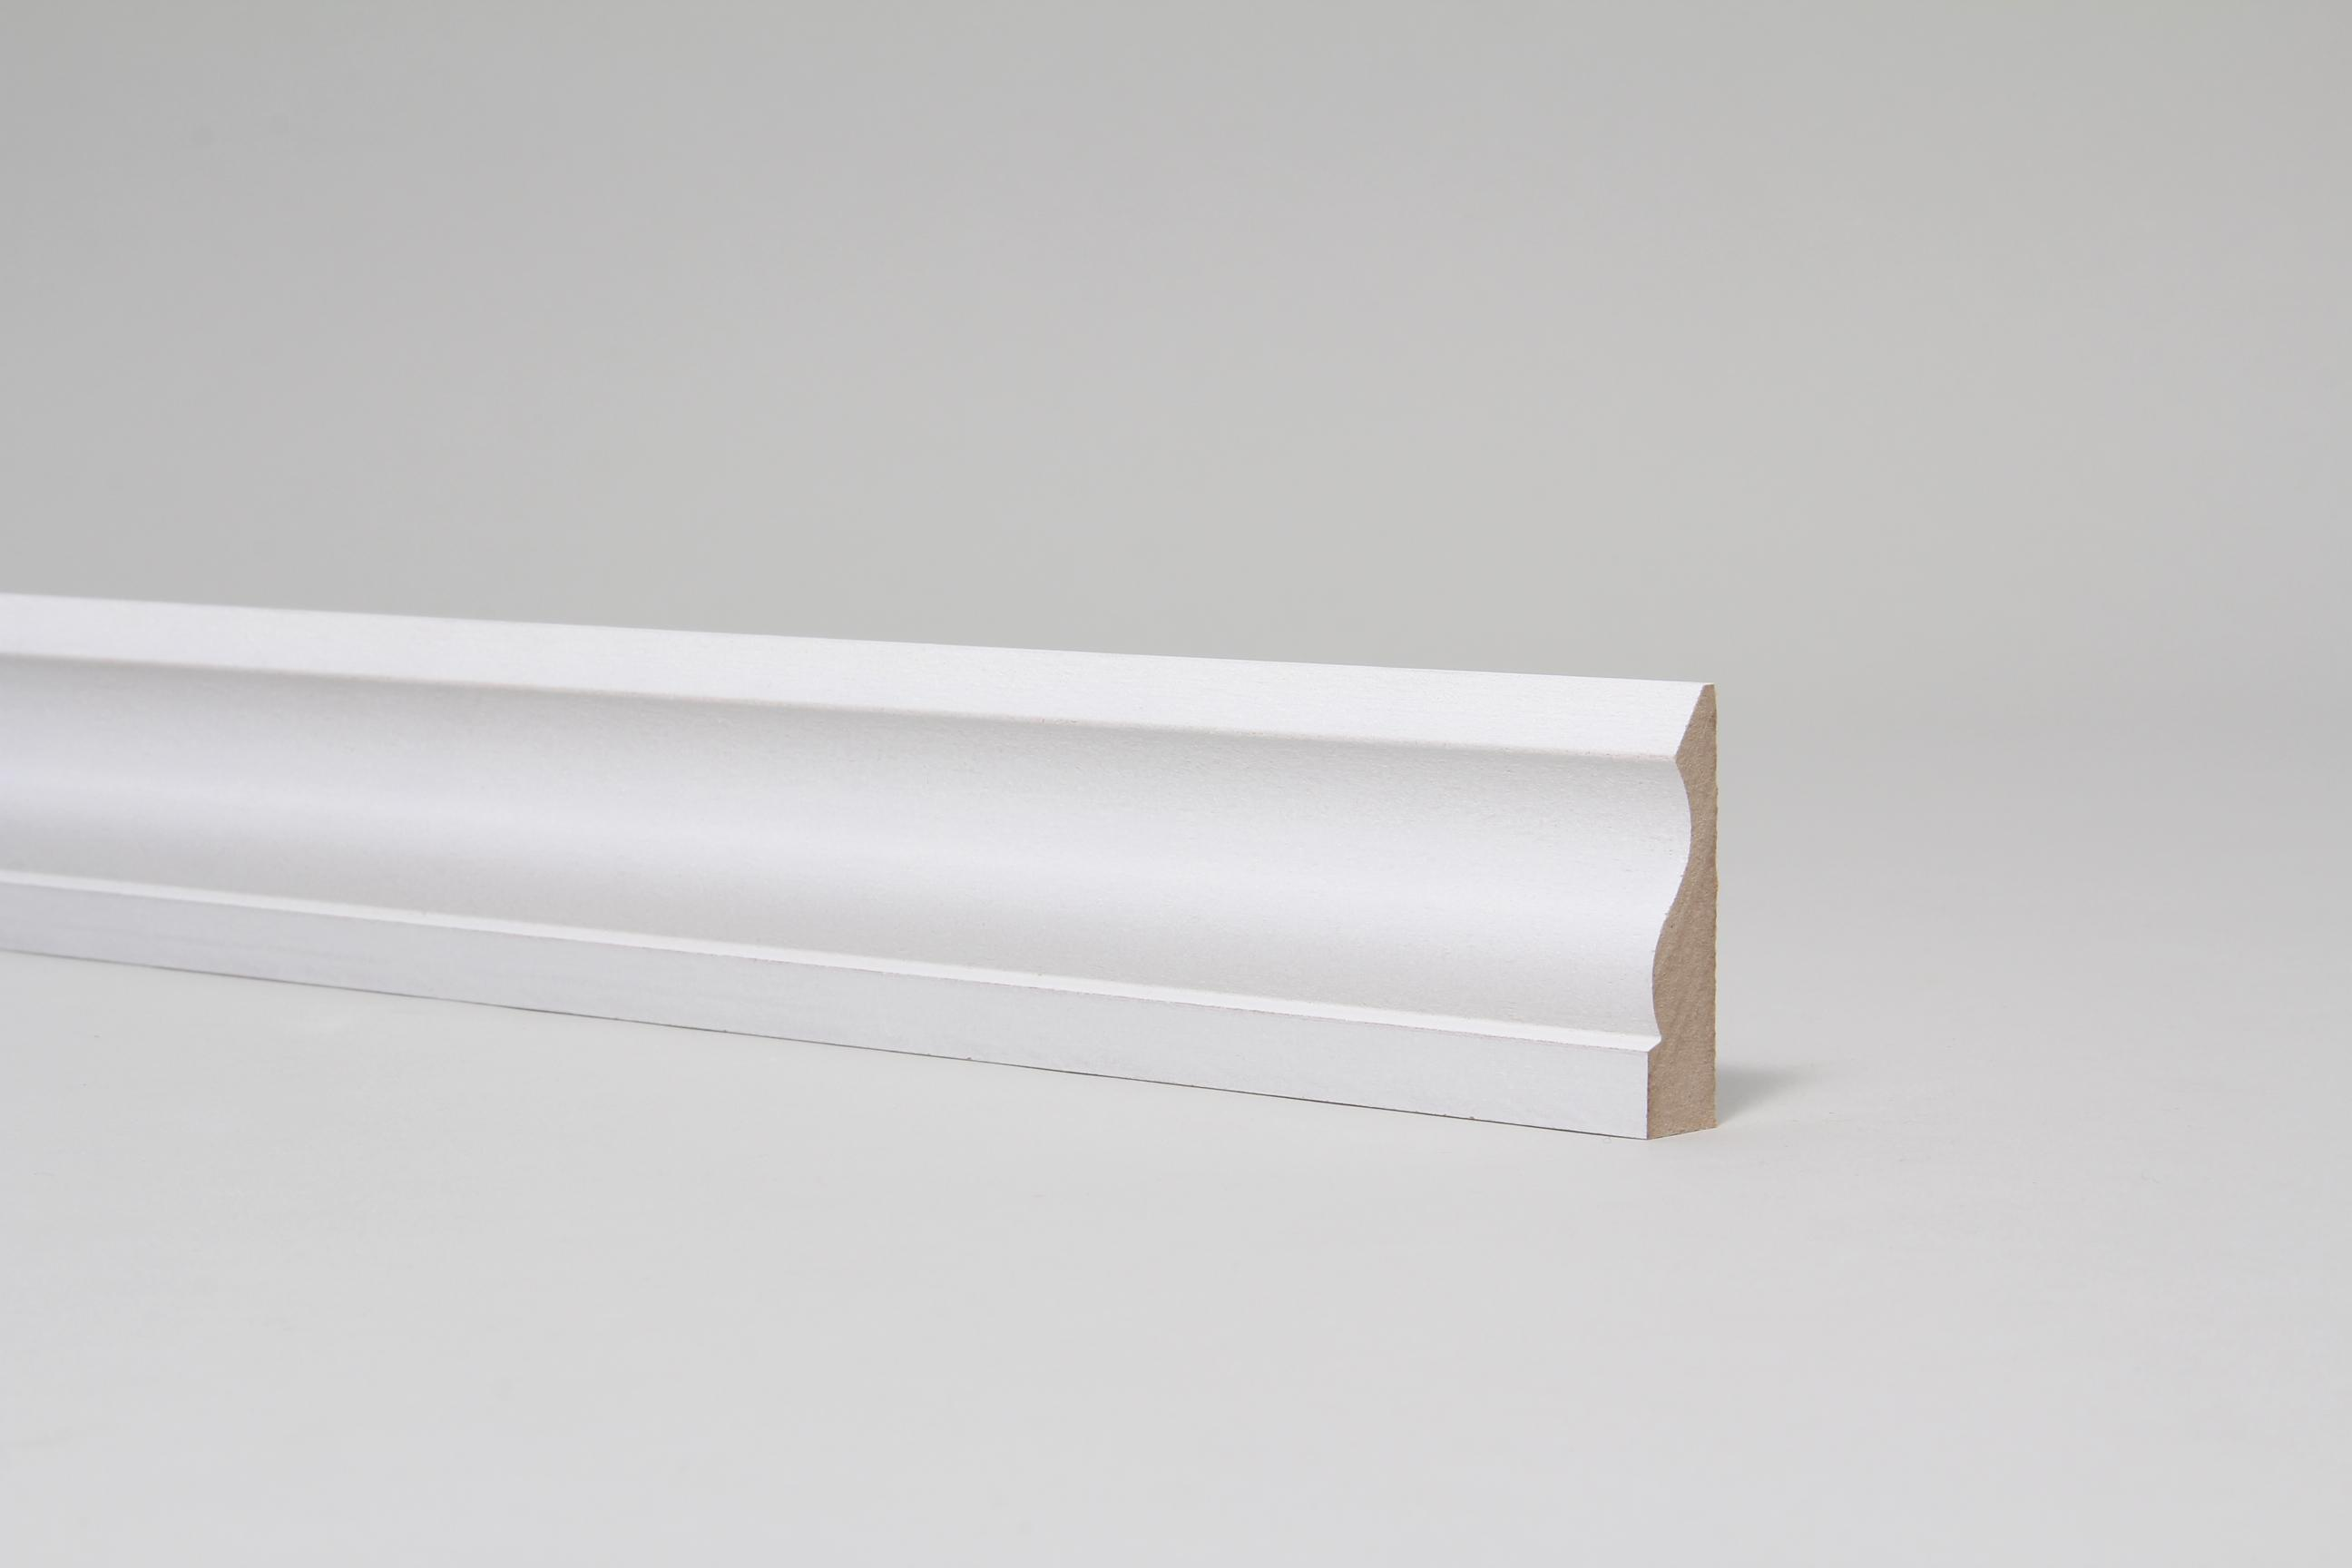 Ogee 15mm x 57mm x 4.4 Mtr Primed